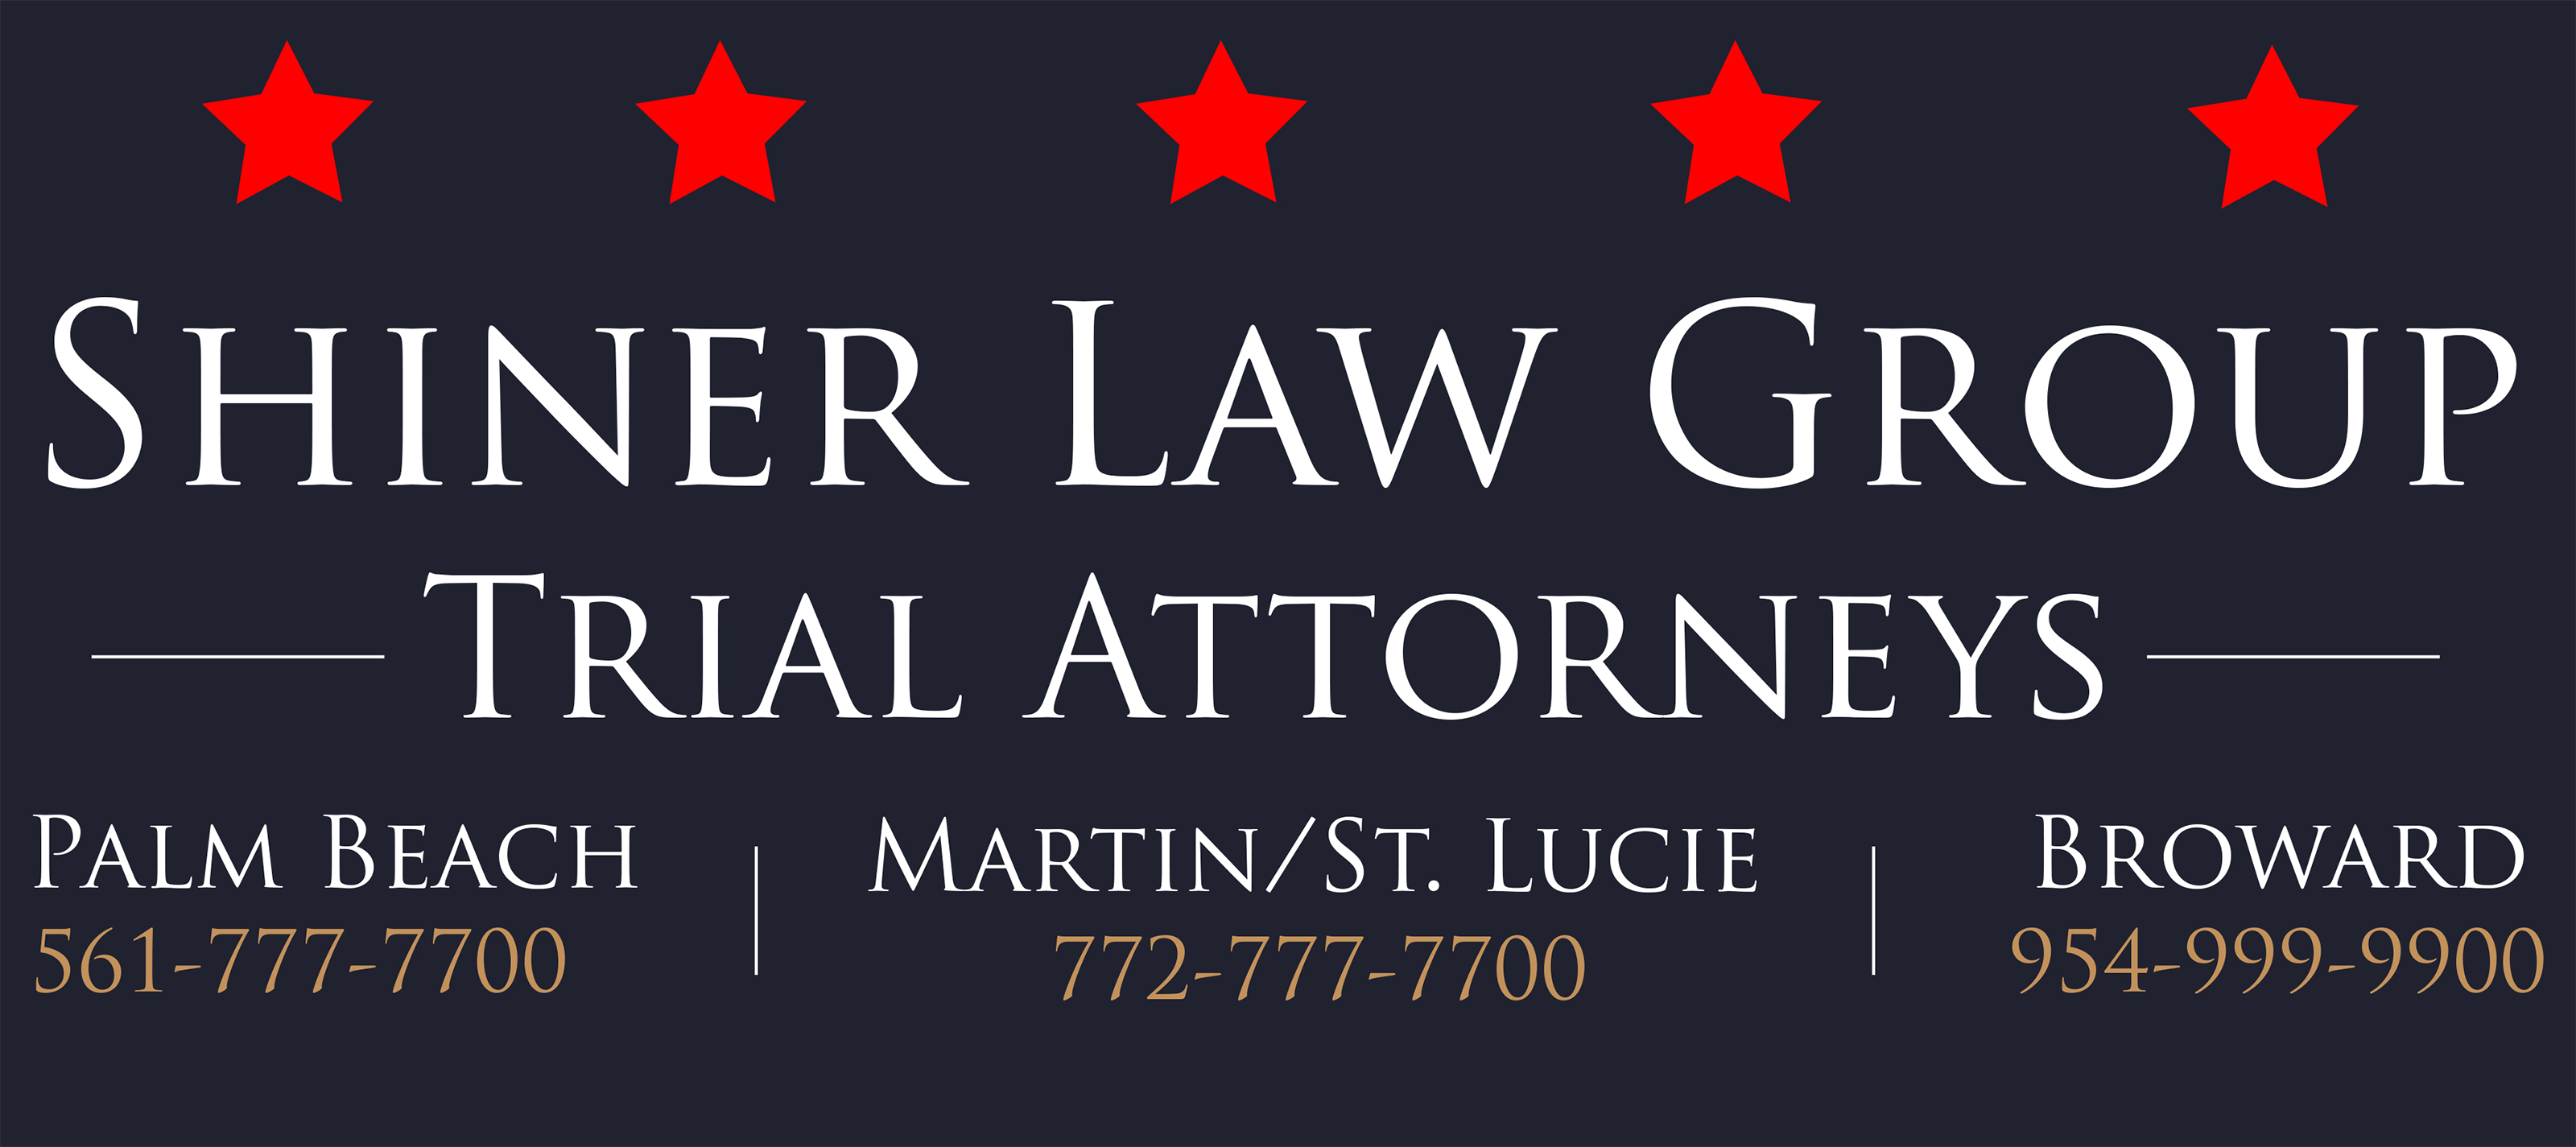 shiner law group charges bank of america allegedly misappropriated cd fundsboca raton based trial attorneys file civil lawsuit on behalf of deceased palm - Bank Of America Christmas Eve Hours